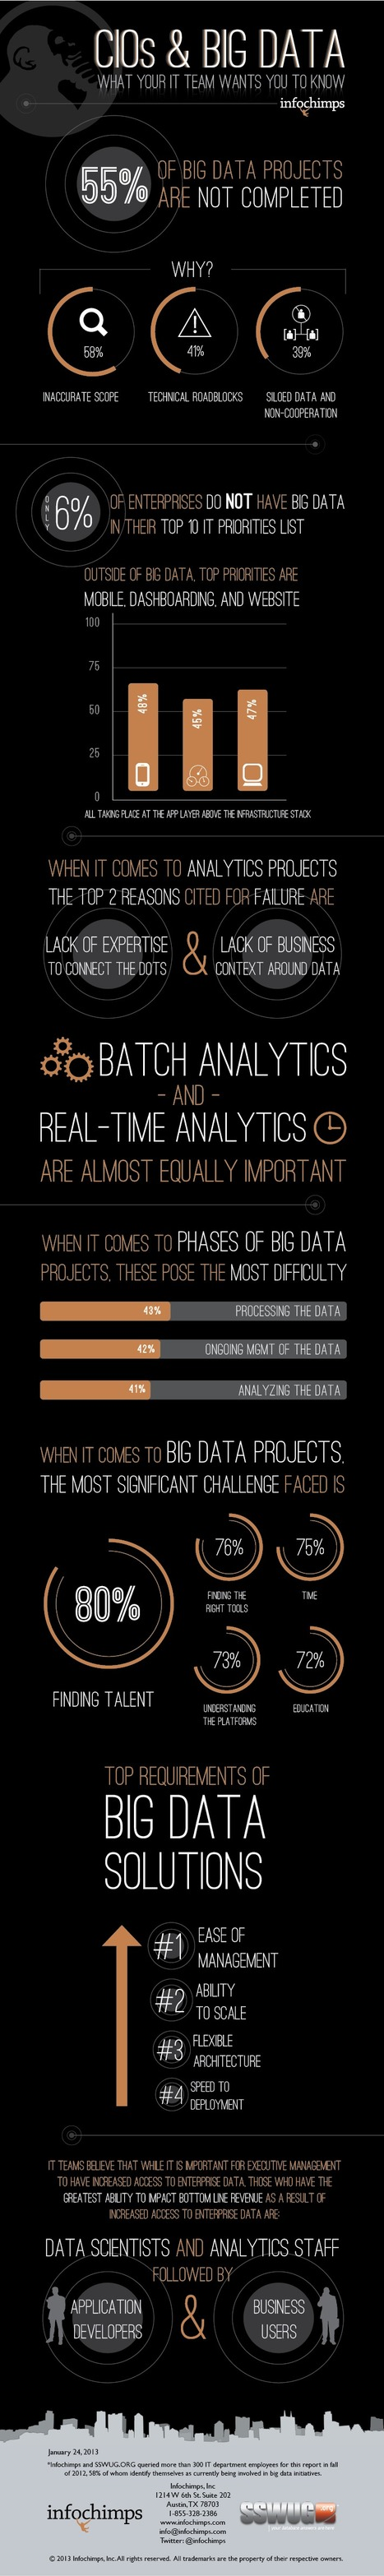 INFOGRAPHIC: CIOs & BIG DATA: What Your IT Team Wants You To Know | CloudTweaks | Cloud Central | Scoop.it